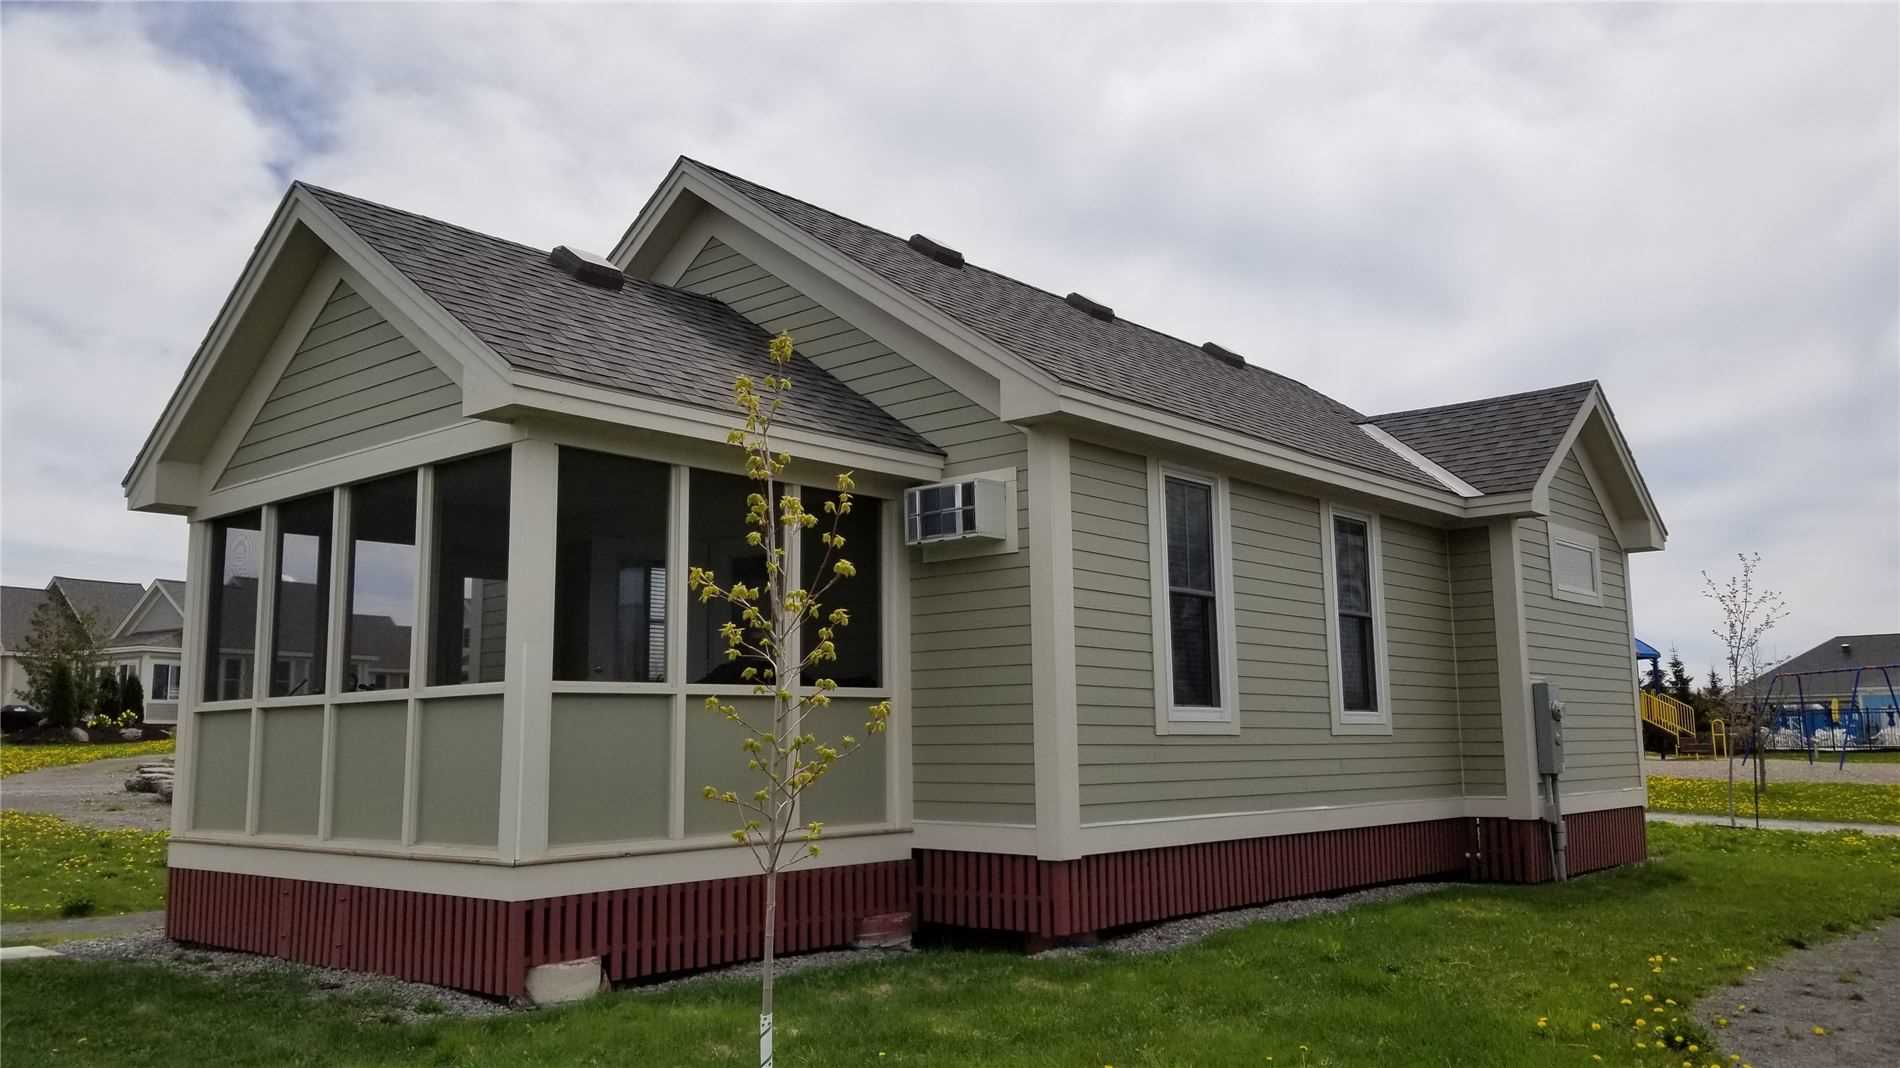 Bungalow in Prince Edward